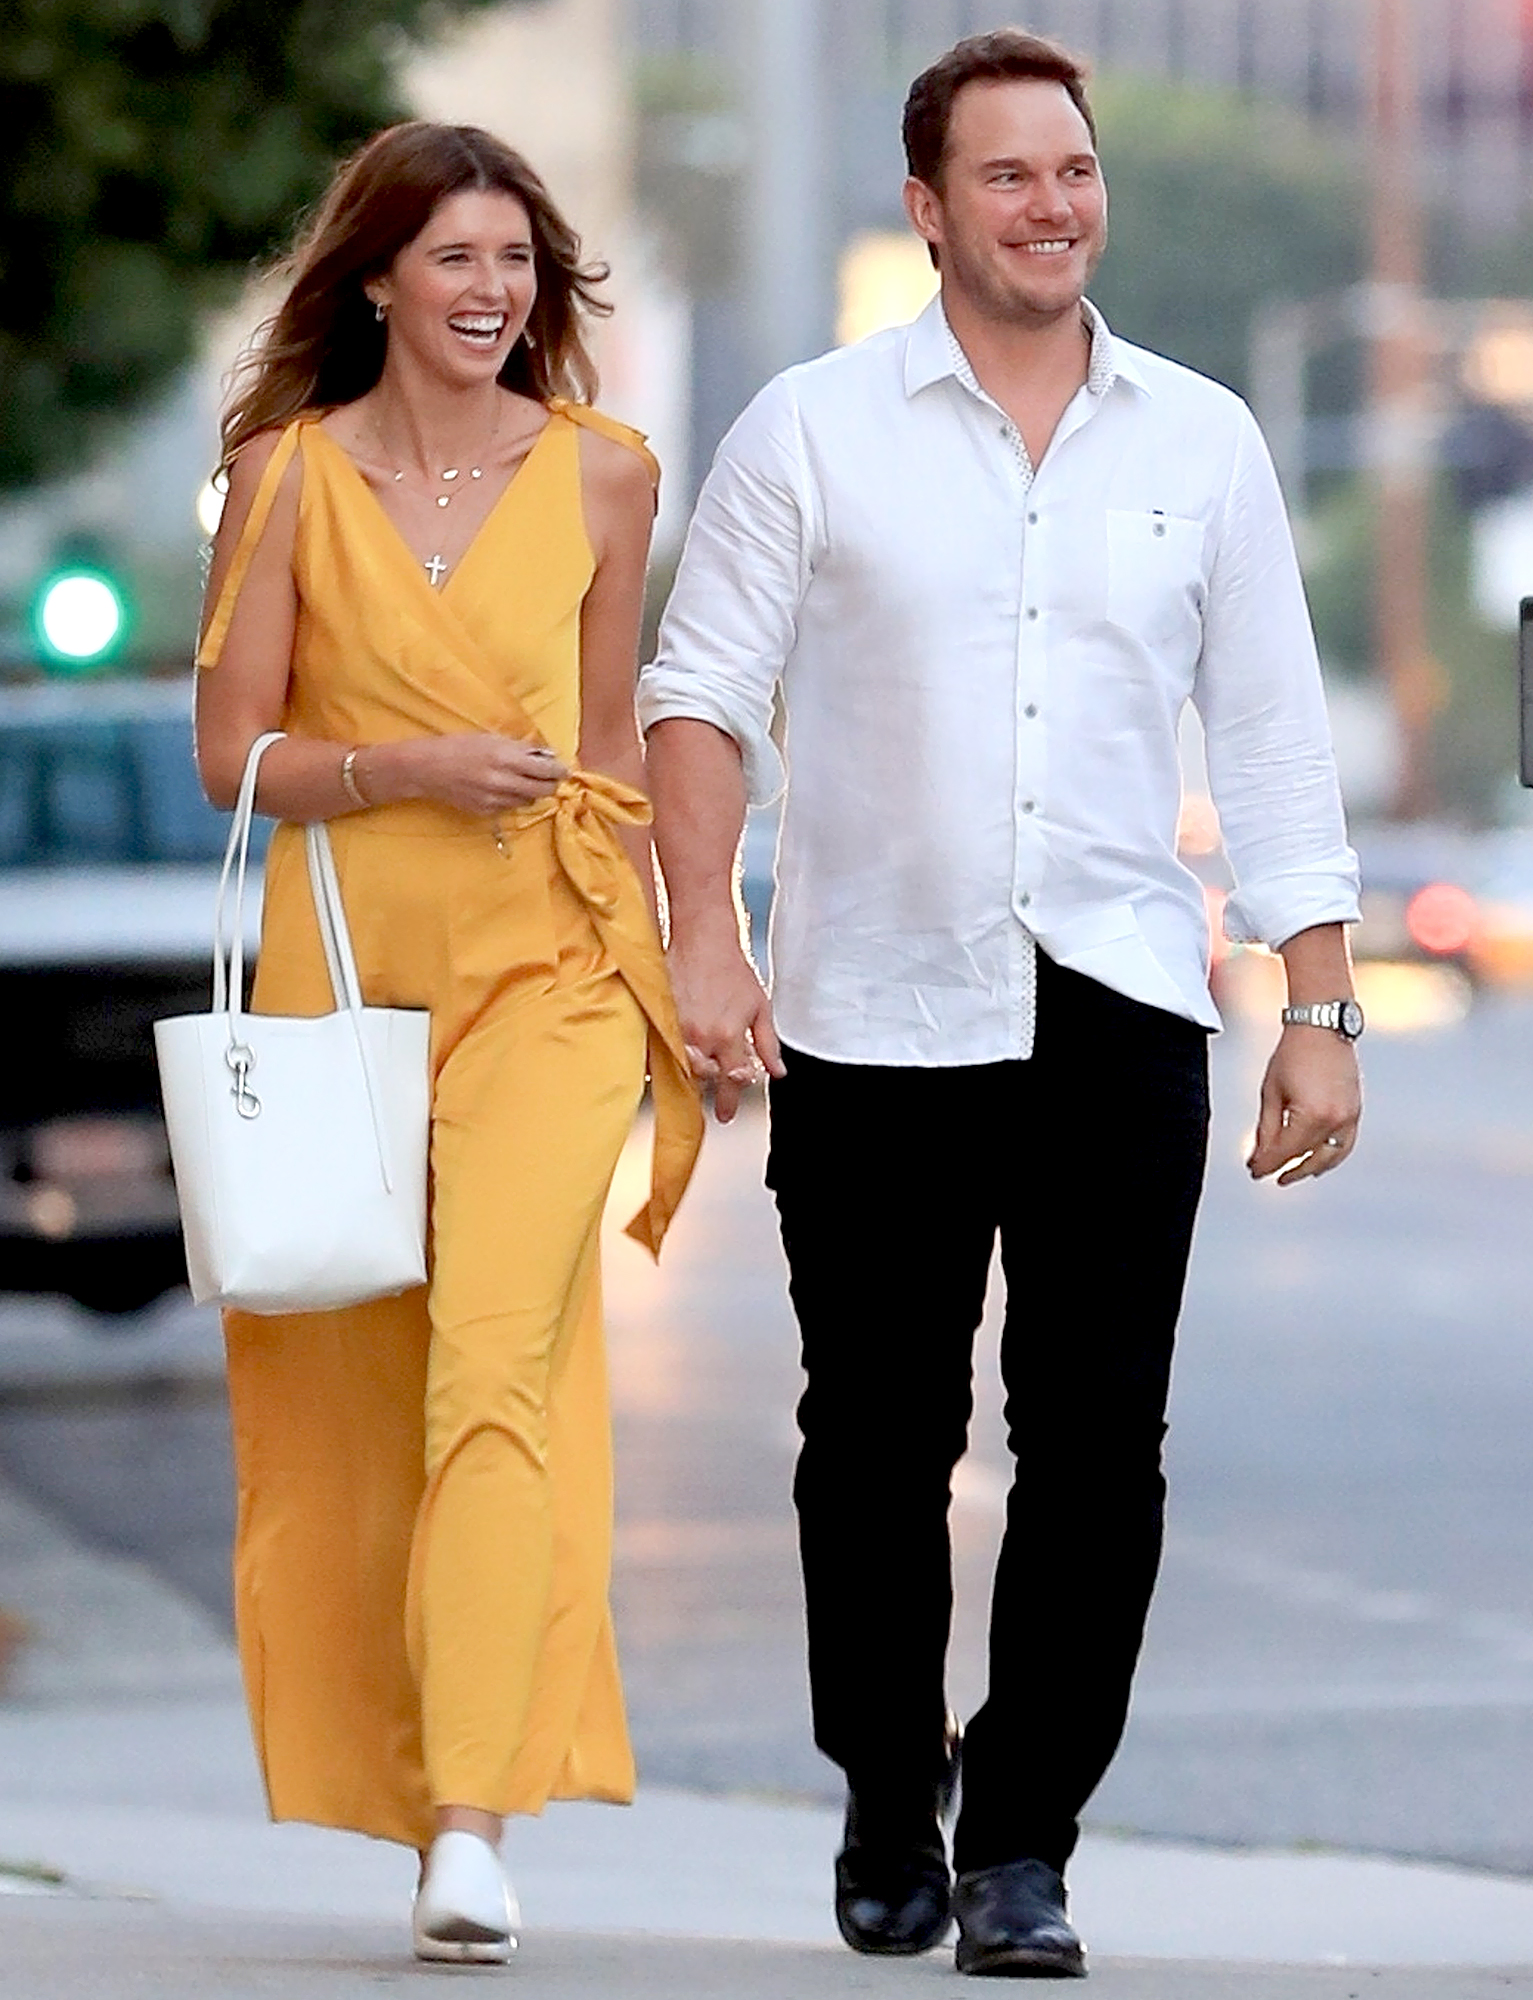 Newlyweds Chris Pratt and Katherine Schwarzenegger Hold Hands, Cozy Up Together at Dinner Date